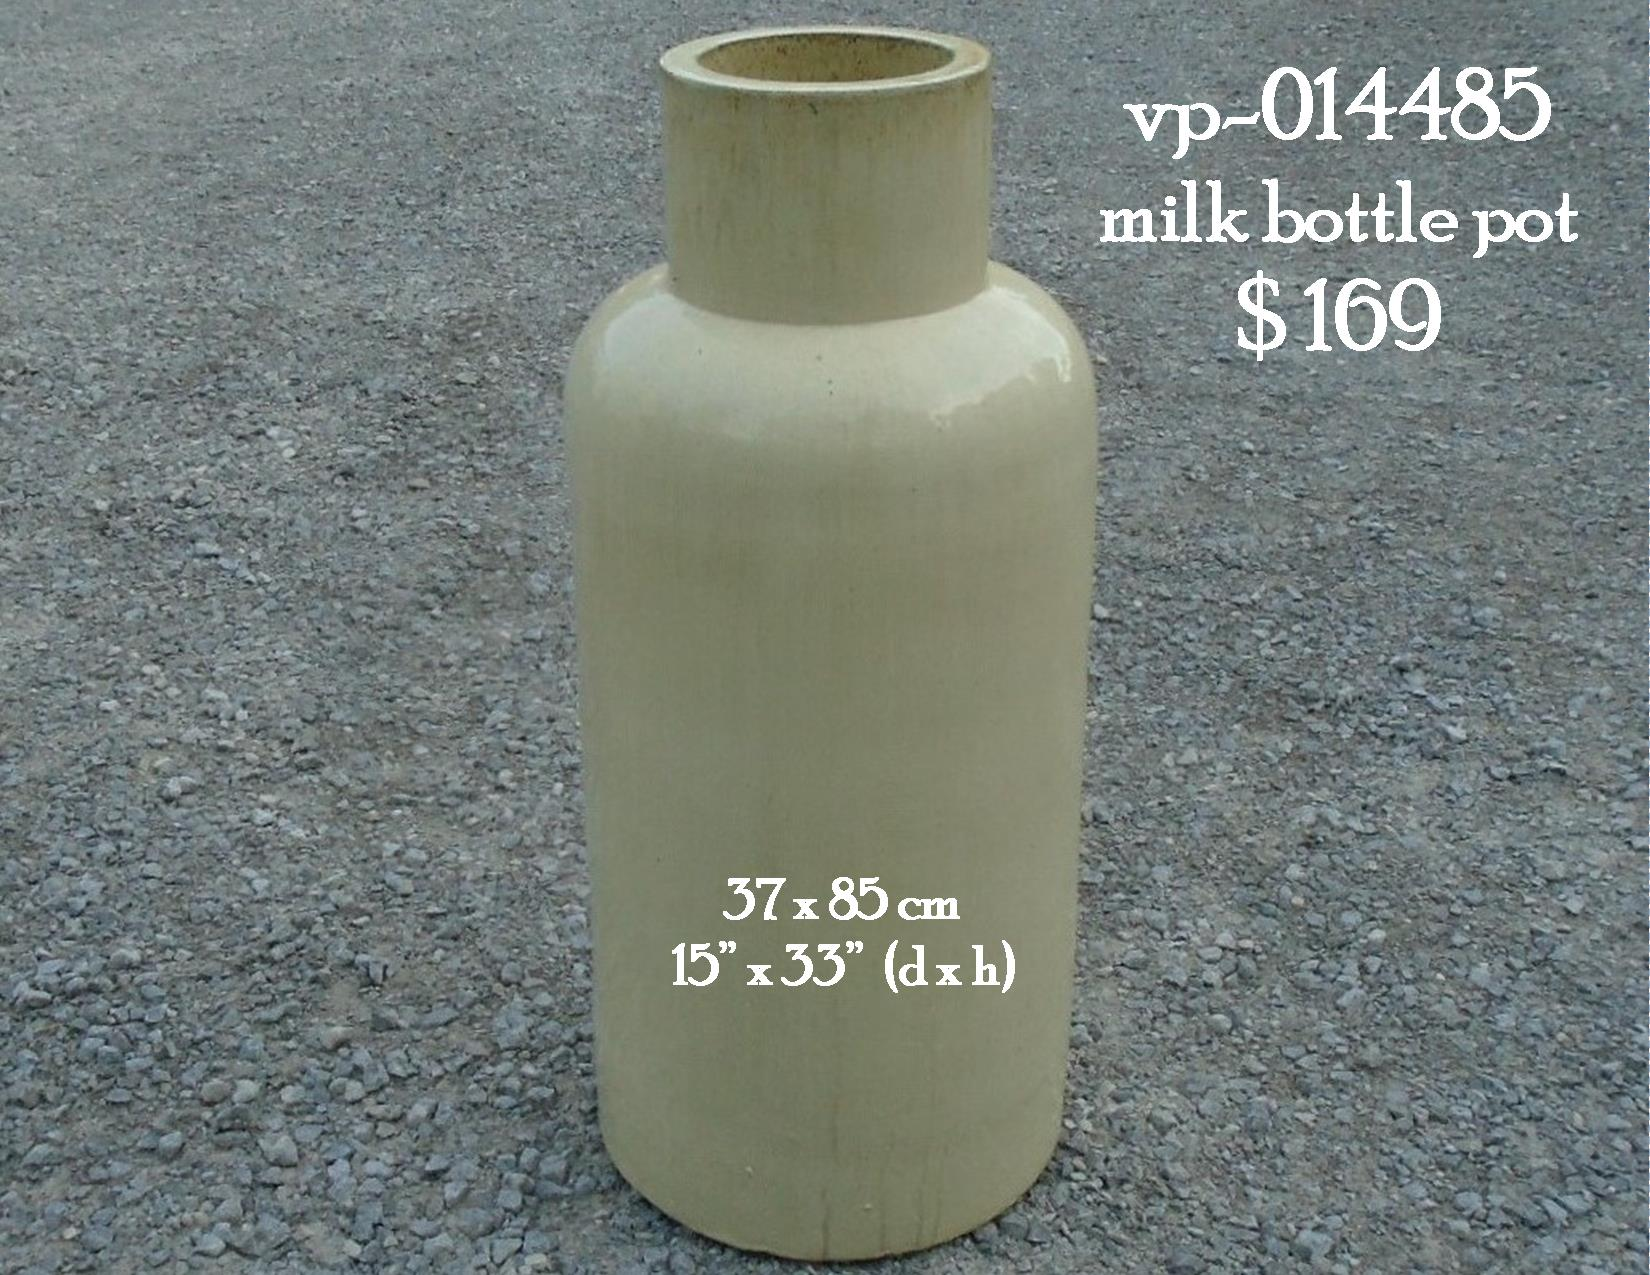 vp-014485   milk bottle pot